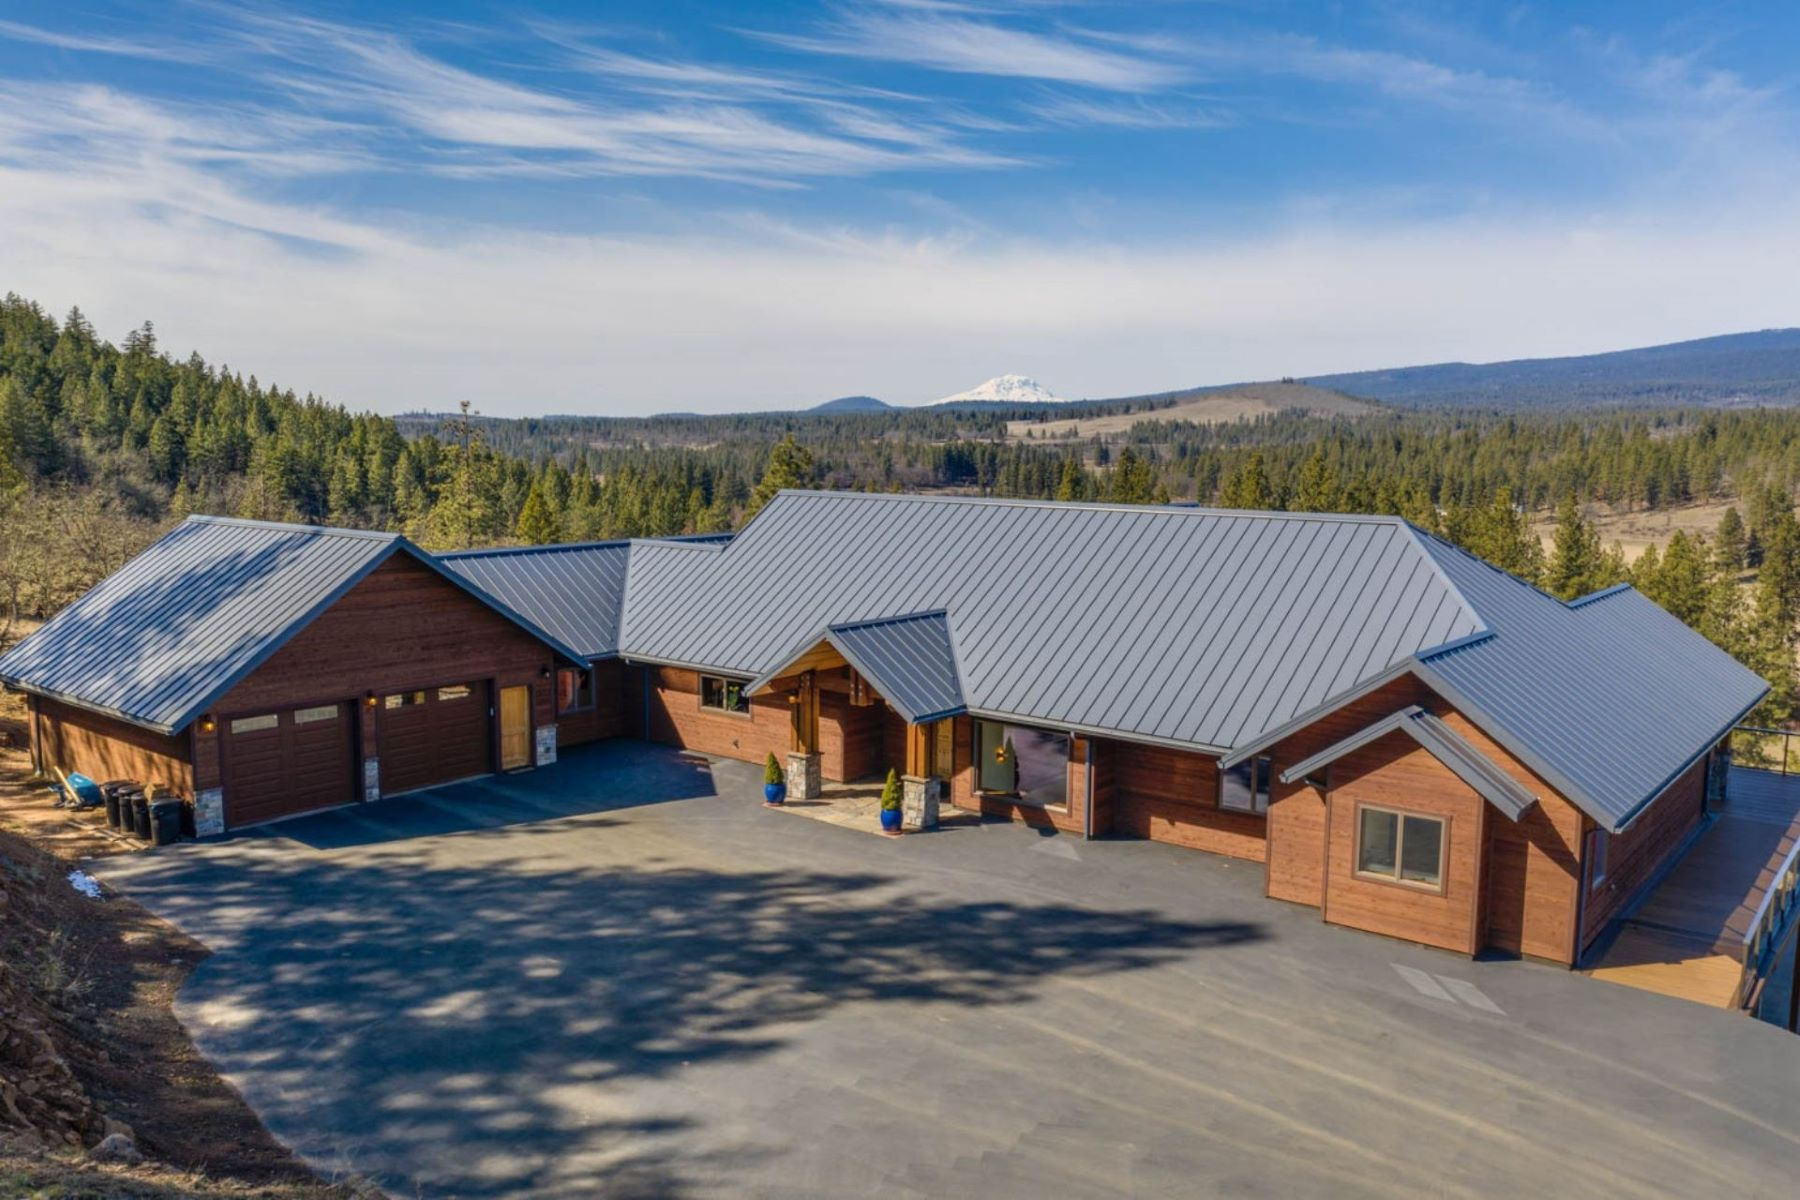 Other Residential Homes 용 매매 에 112 WOODLAND RD Goldendale, WA 98620 Goldendale, 워싱톤 98620 미국